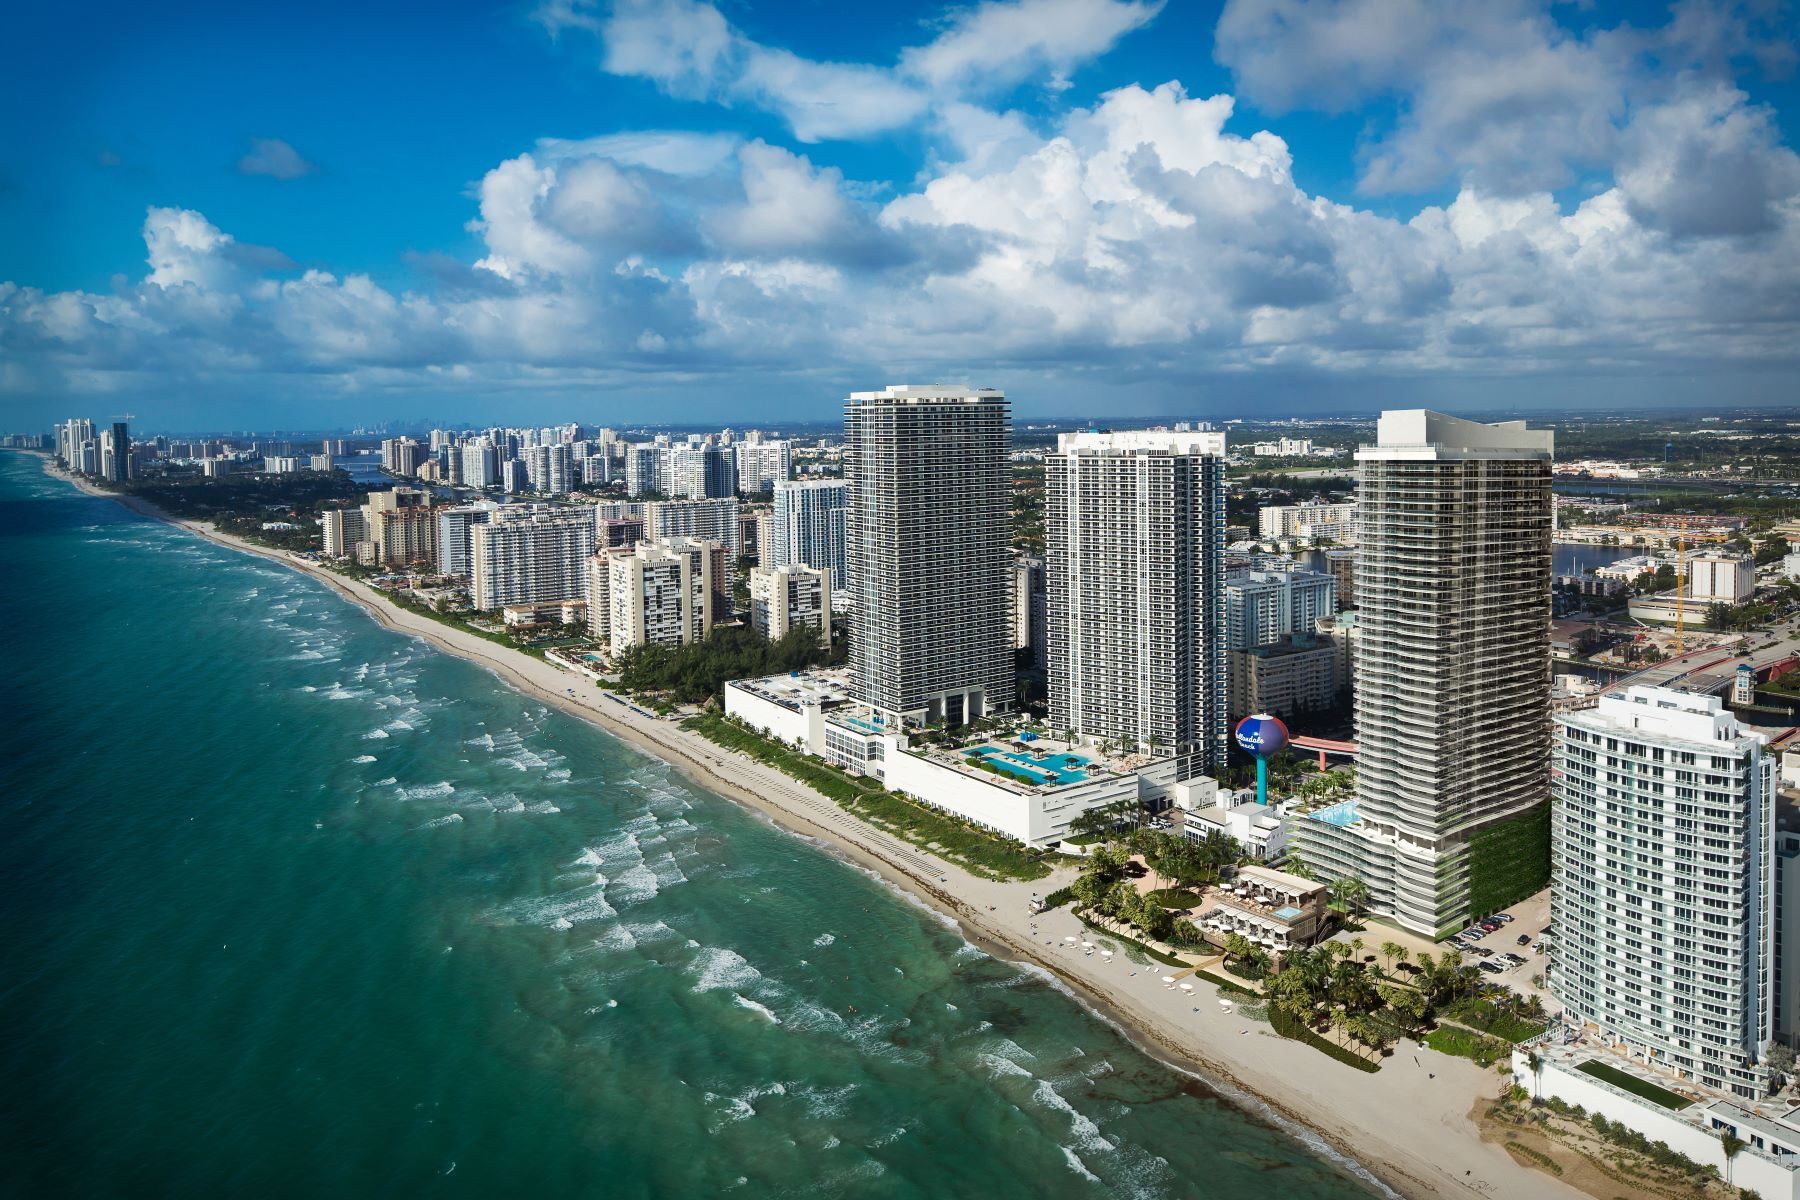 Condominium for Sale at HYDE BEACH HOLLYWOOD 4111 S OCEAN DR #2205 Hollywood, Florida 33019 United States